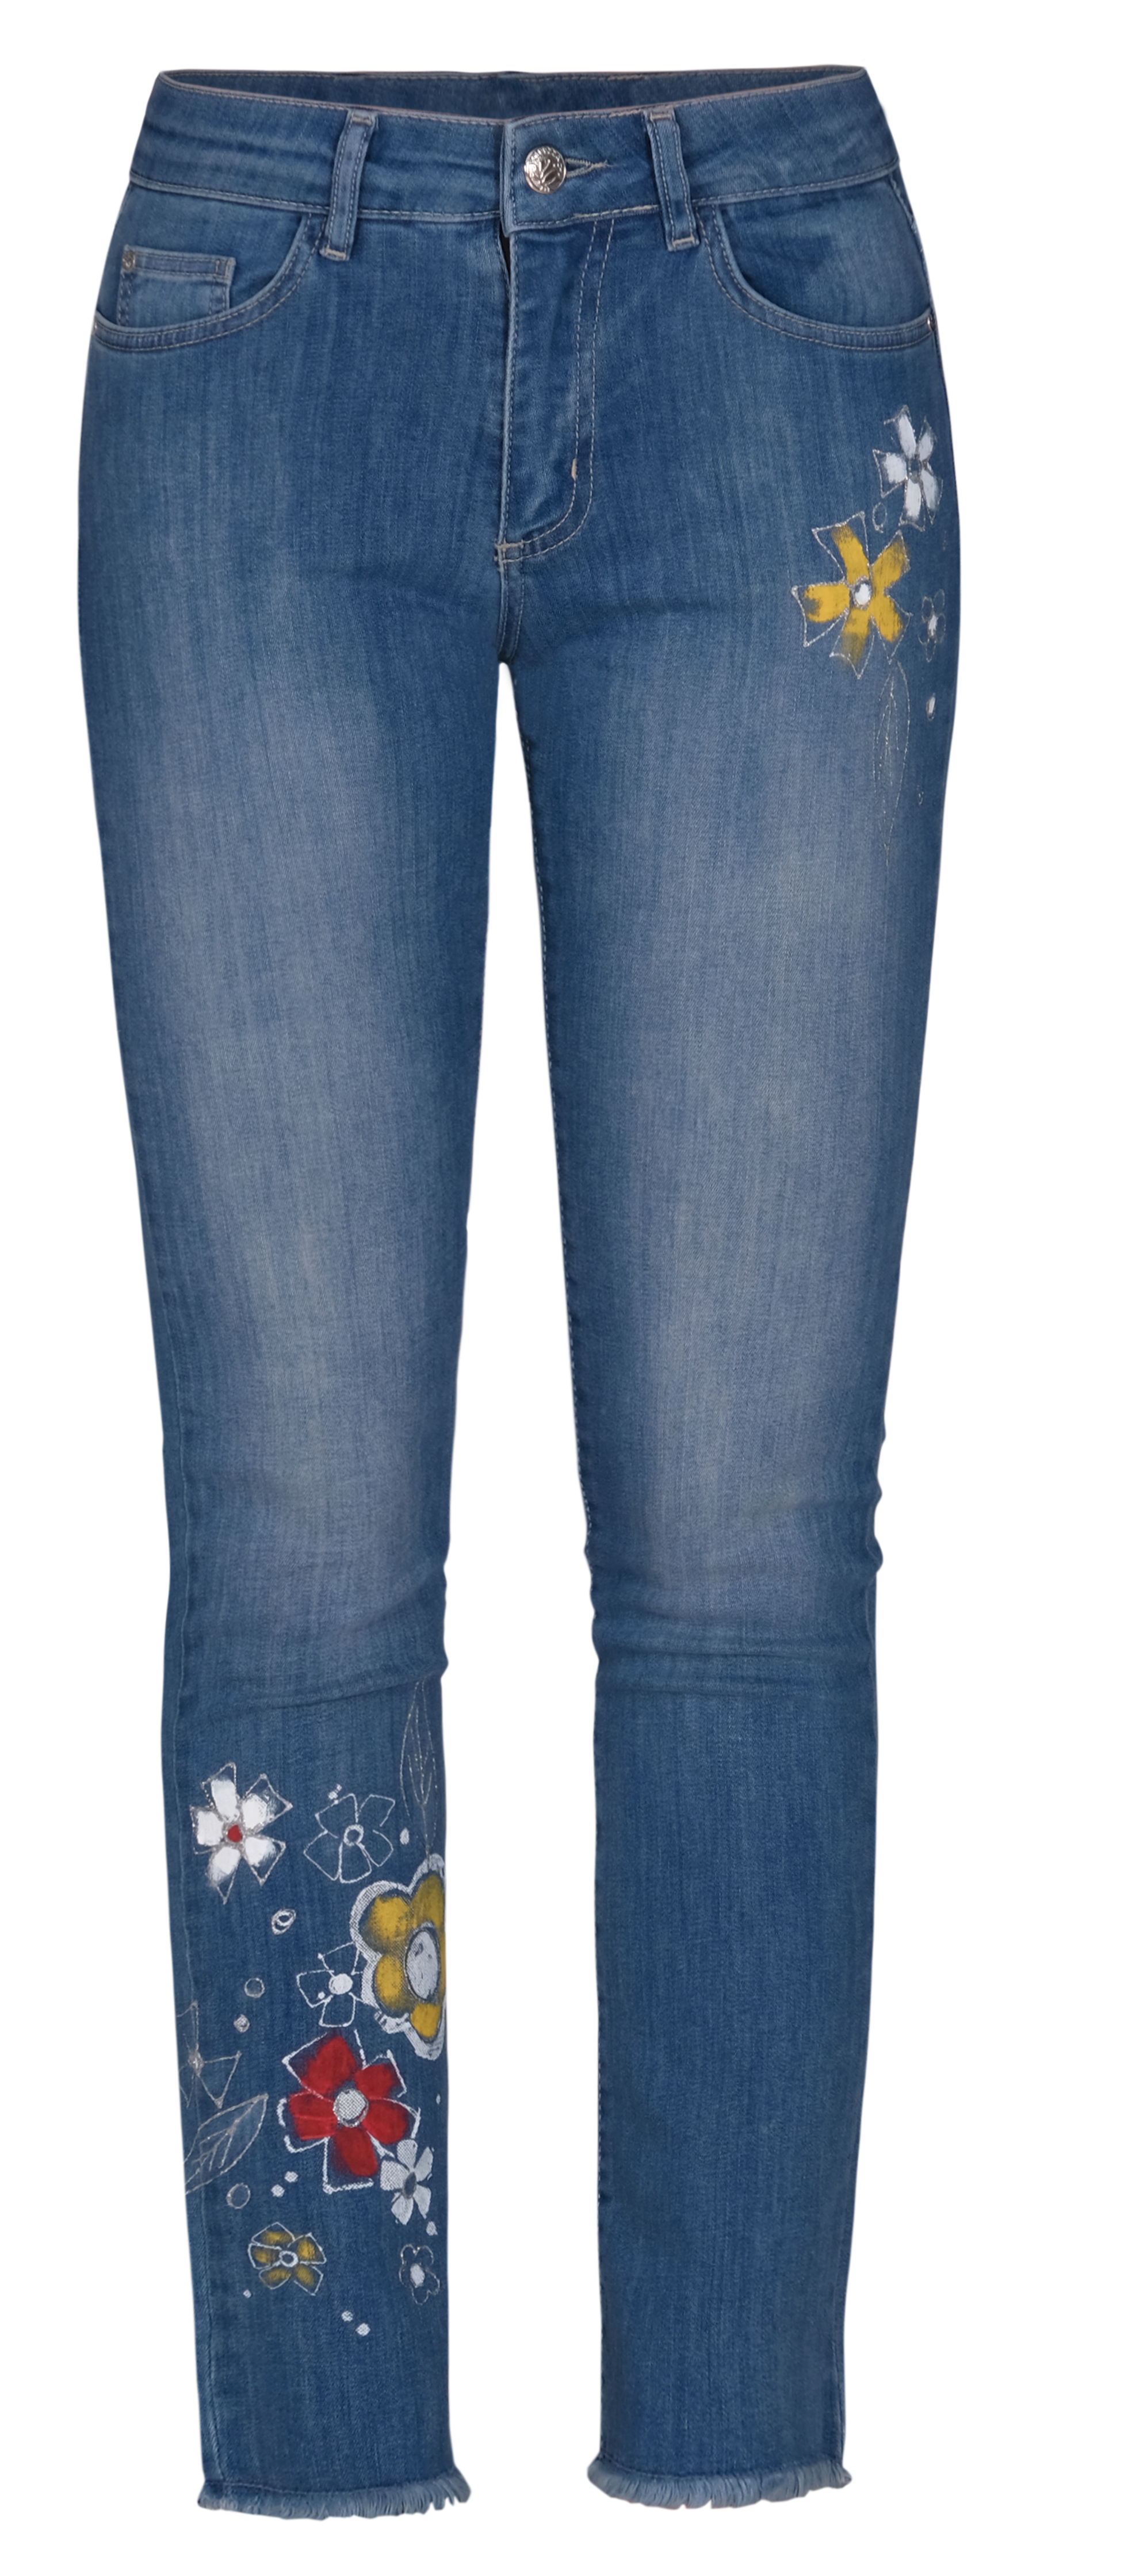 Dolcezza: My Flower Painted Flirty Jeans (2 Left!) Dolcezza_21300